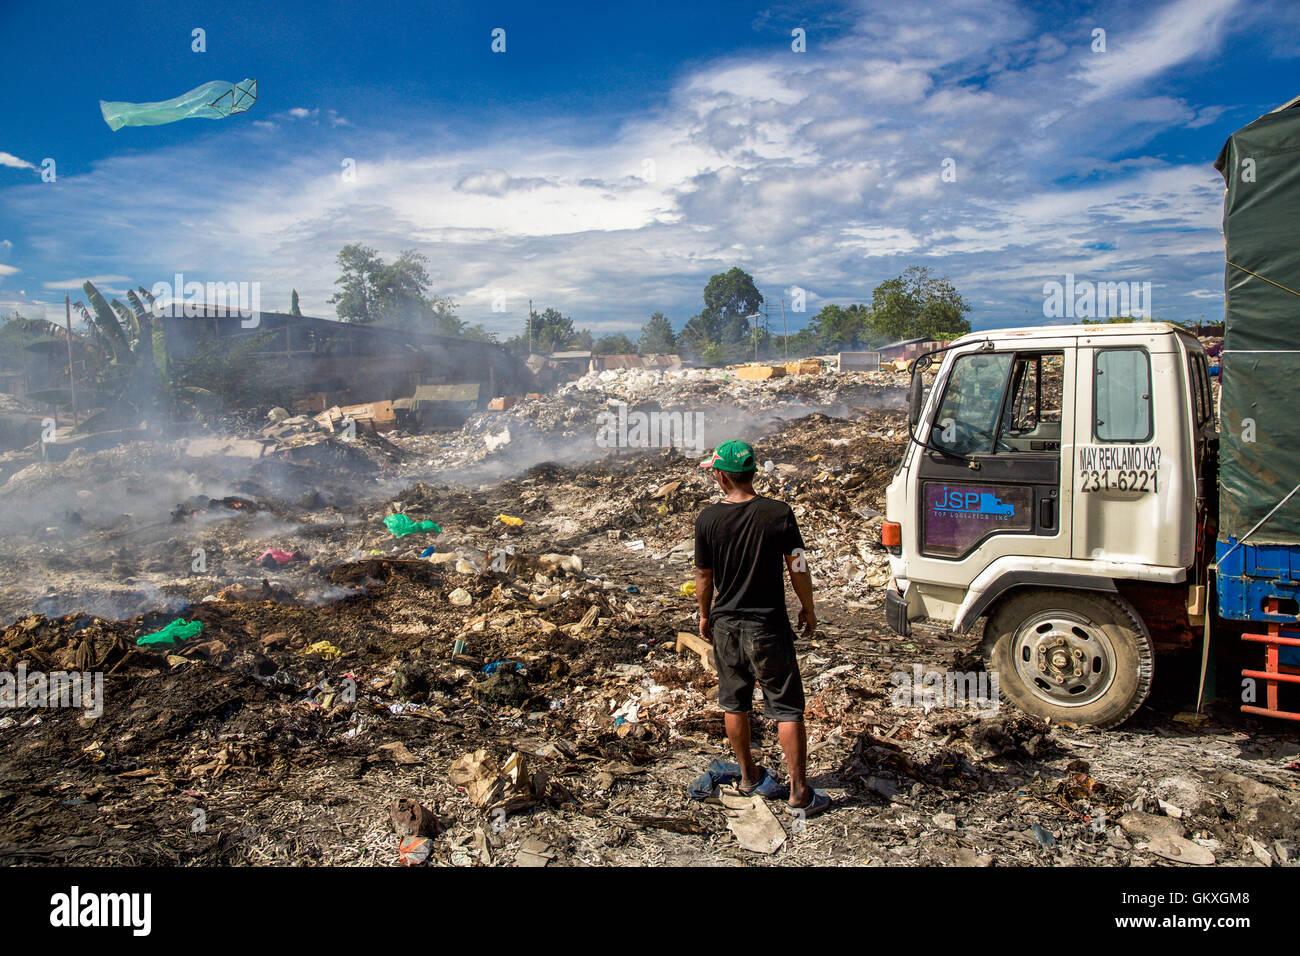 People of the Dump Site on the island of Cebu in the Philippines. - Stock Image